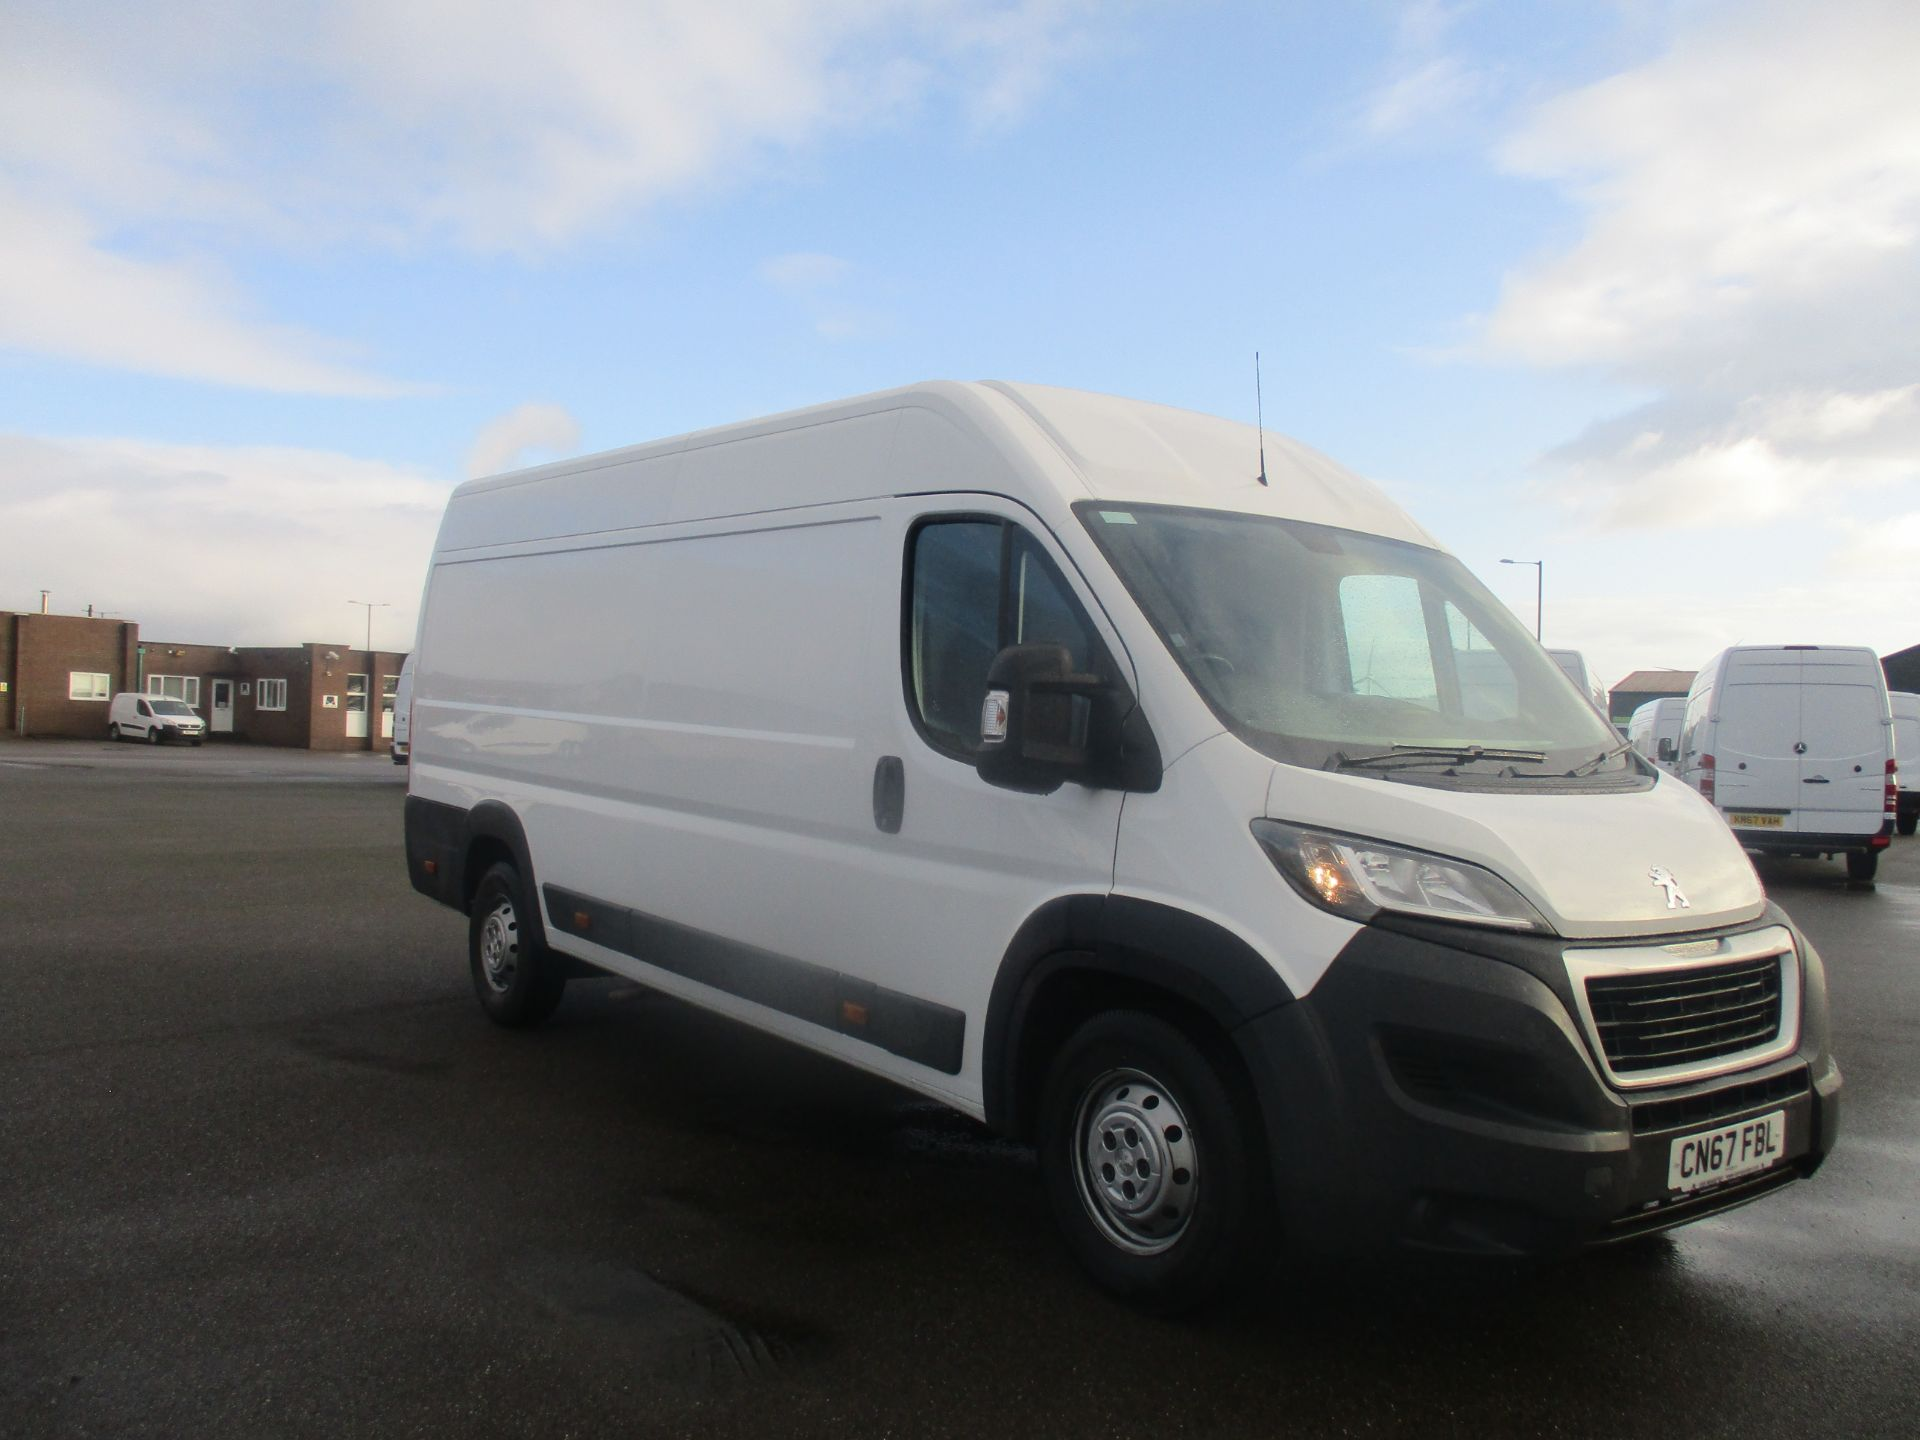 2017 Peugeot Boxer 435 L4 H2 BLUE HDI 2.0 130PS PROFESSIONAL EURO 6. AIR CON, SAT NAV (CN67FBL)